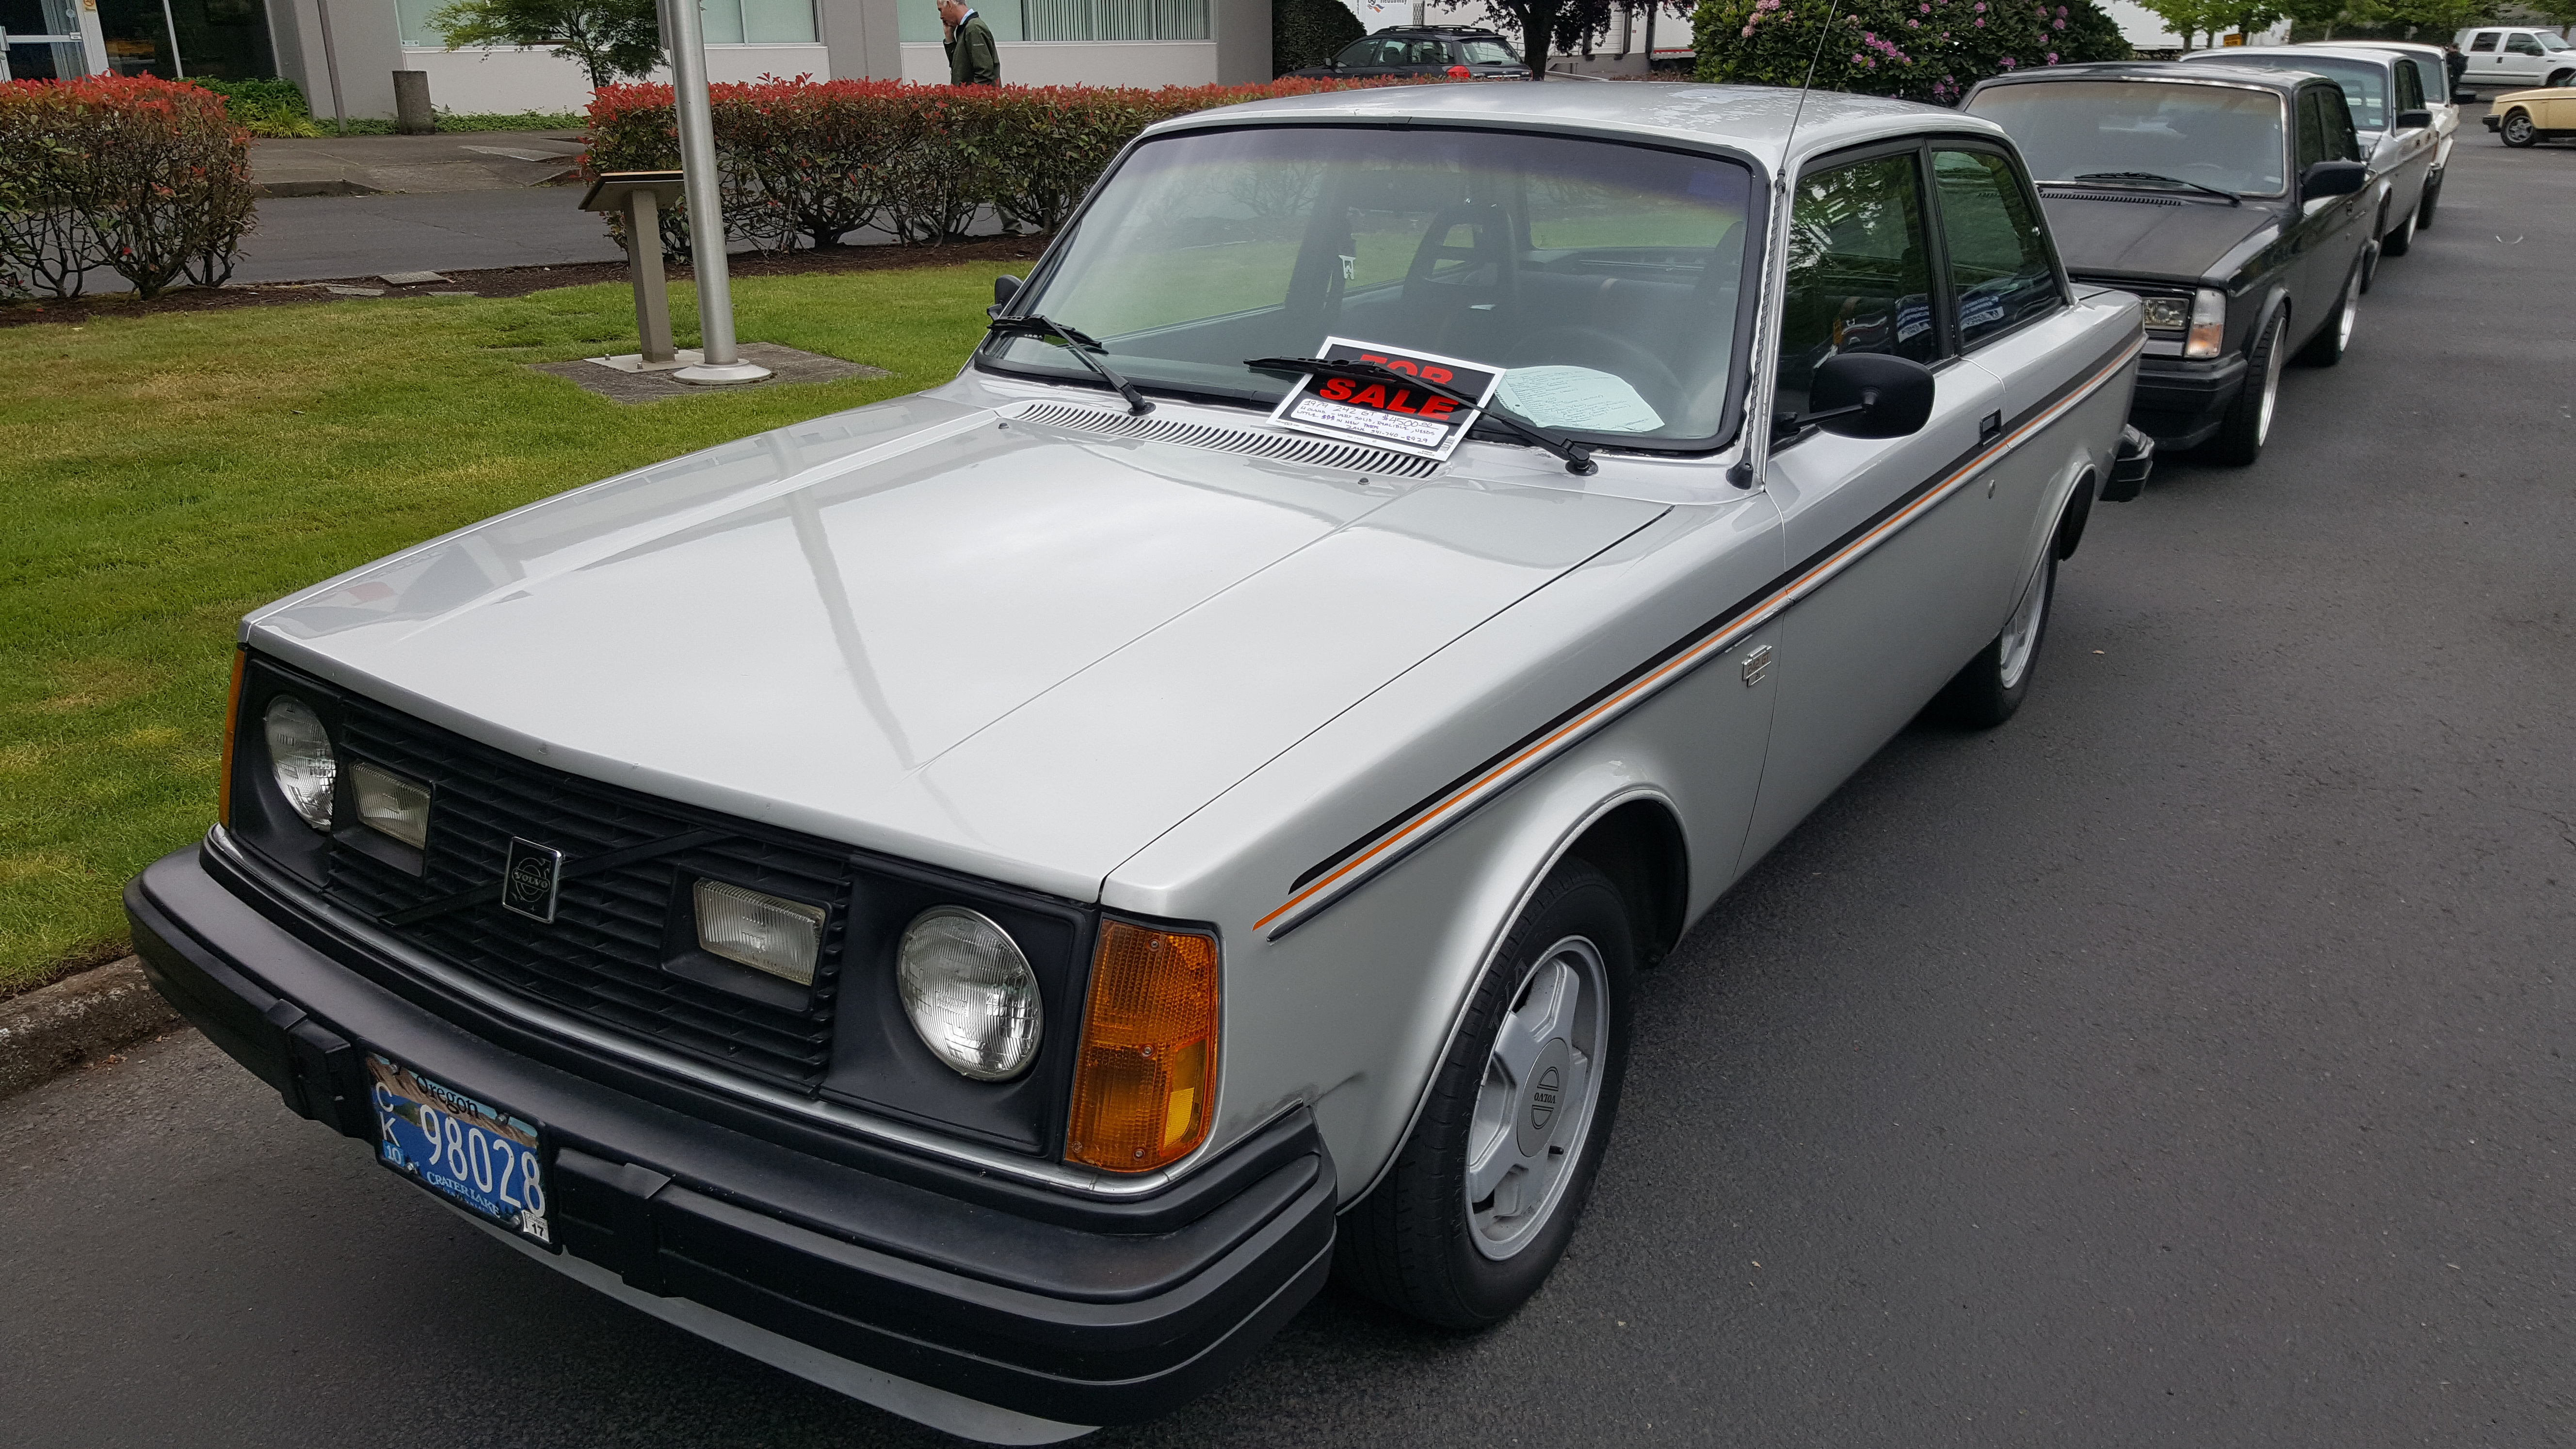 Volvo Show, Part 1 – 1979 Volvo 242 GT | Rusty But Trusty